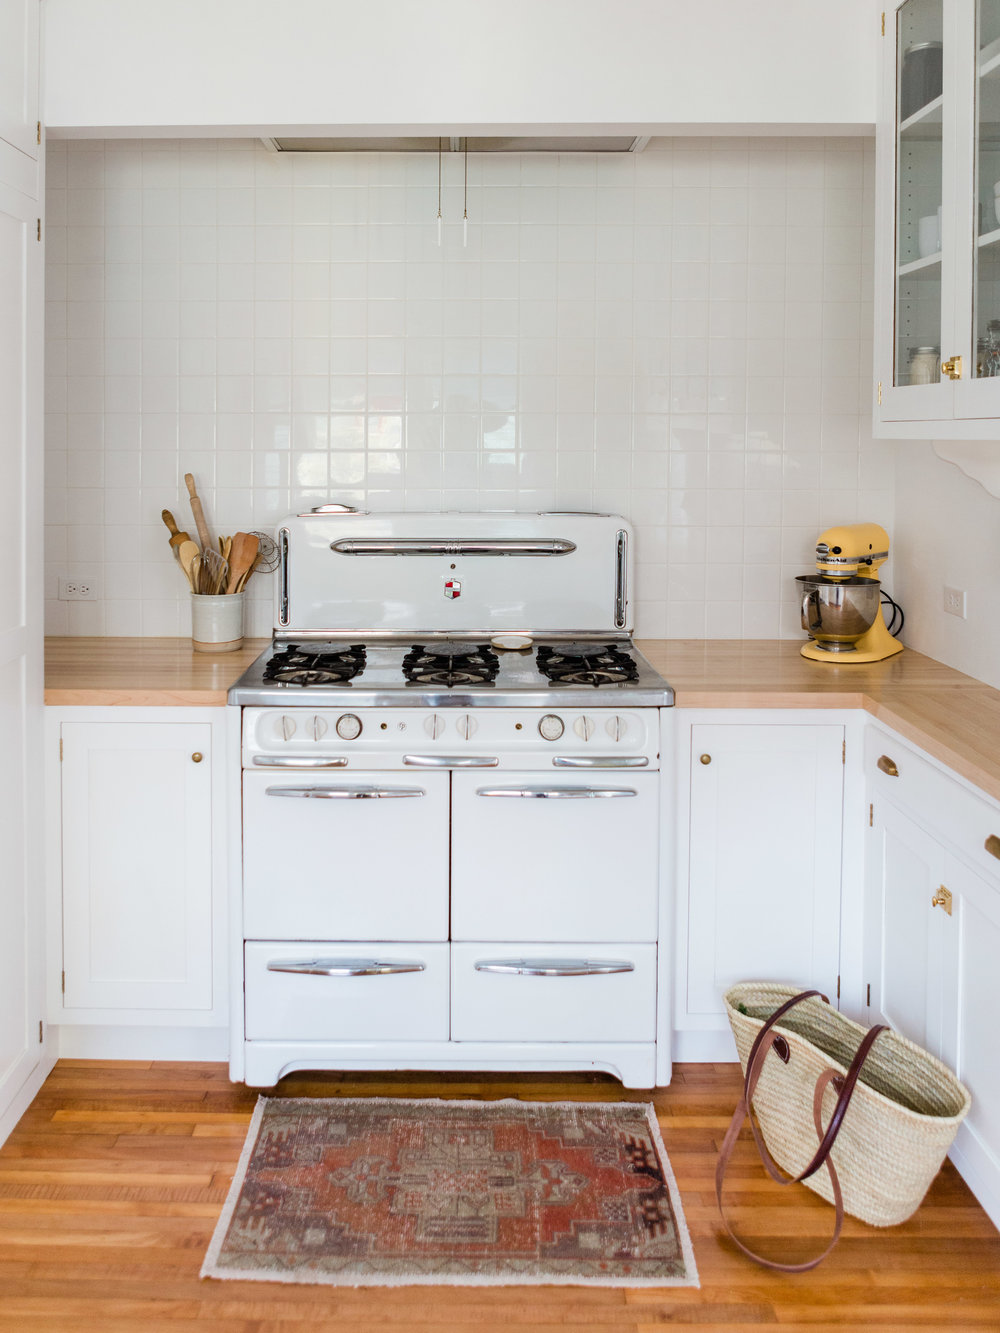 All white kitchen with vintage style stove and Turkish kilim rug from Foragedhome.com